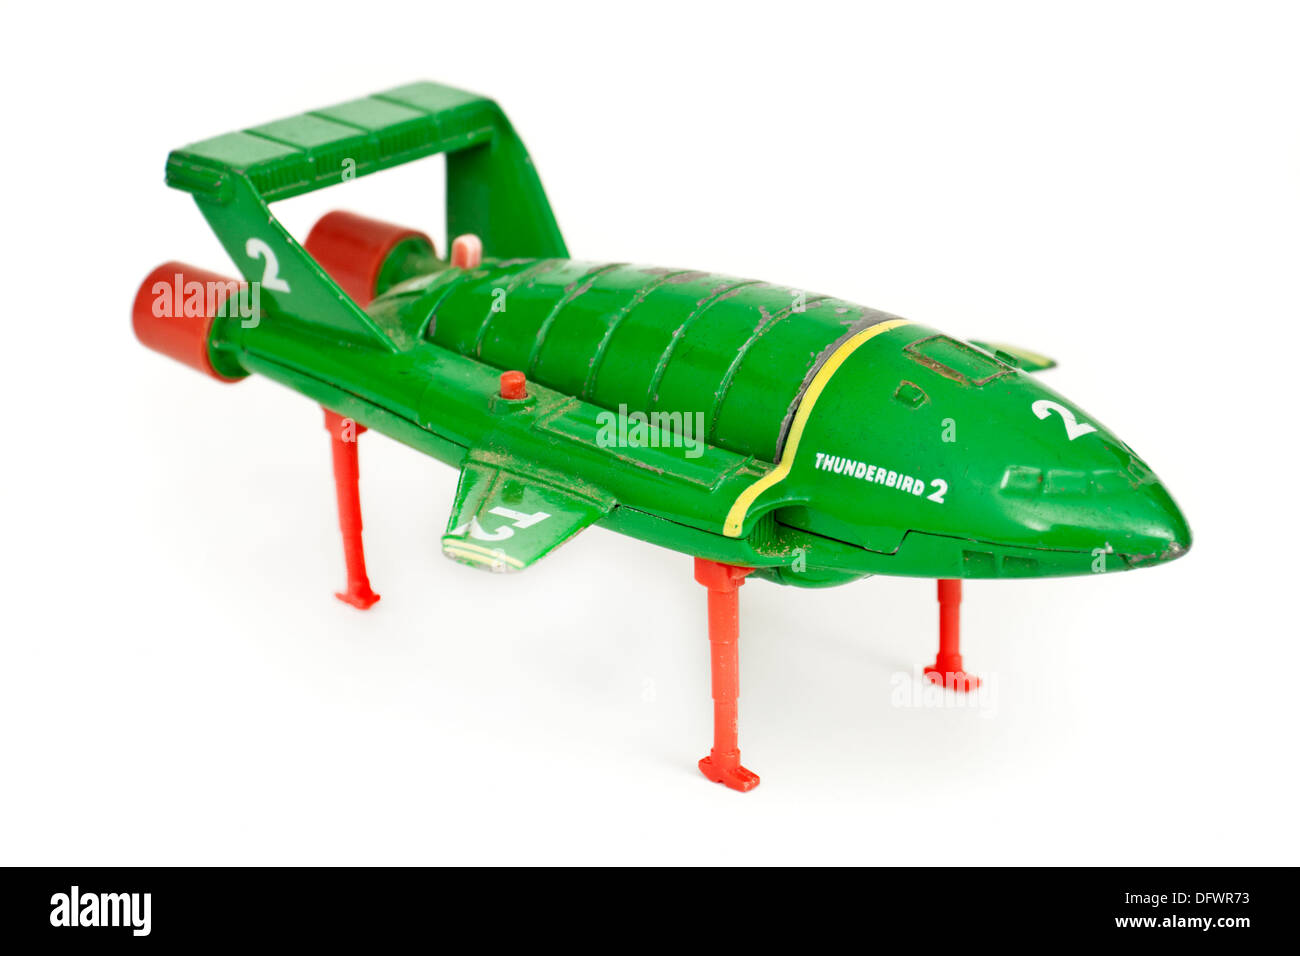 """""""Thunderbird 2"""" rescue aircraft model toy from the 1960's TV-series """"Thunderbirds"""", made by Matchbox Stock Photo"""